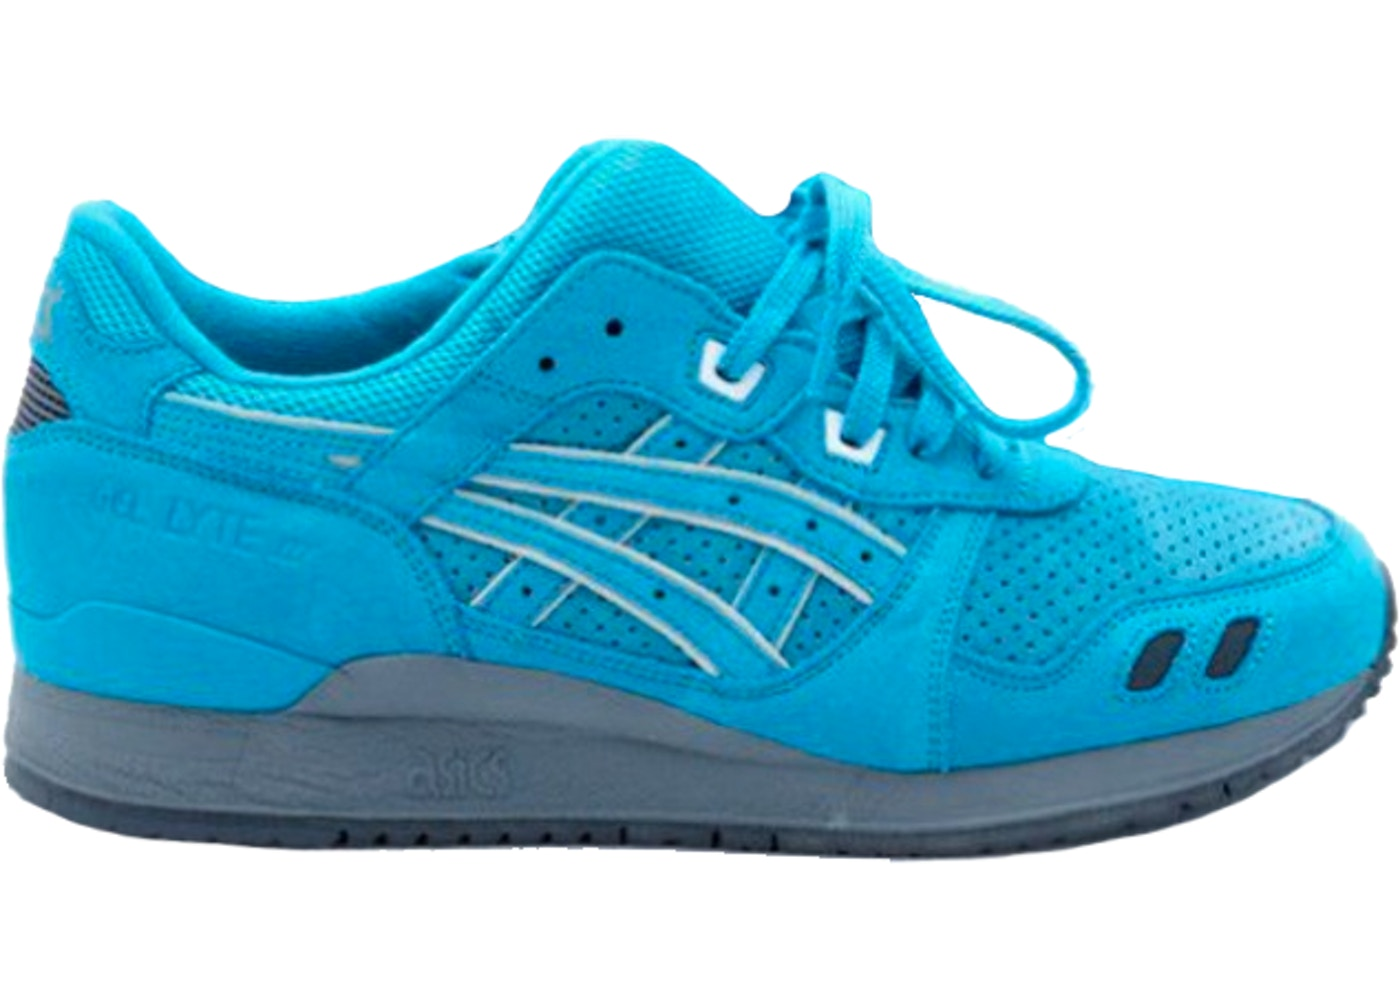 buy online 5a2b8 be67e Buy Asics Shoes & Deadstock Sneakers